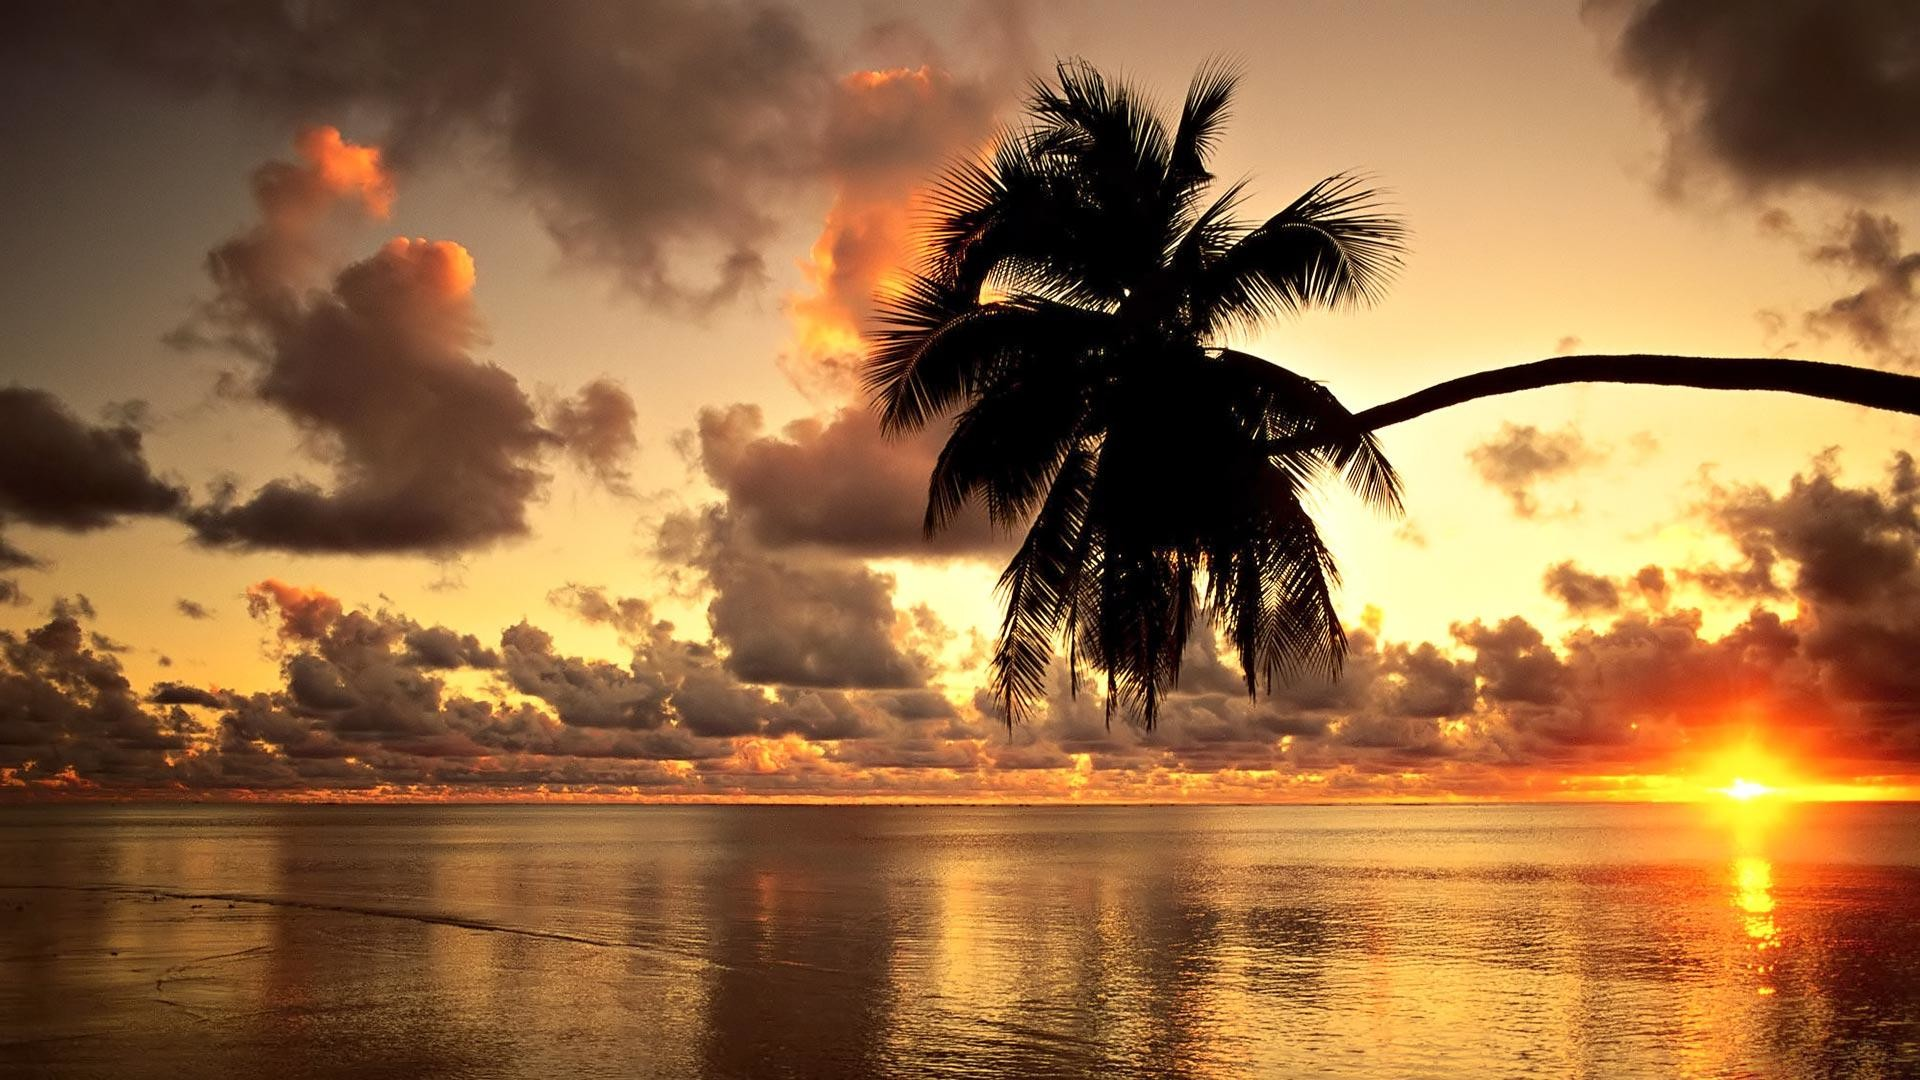 58 Hd Wallpaper Collections: HD Hawaii Wallpapers (71+ Images